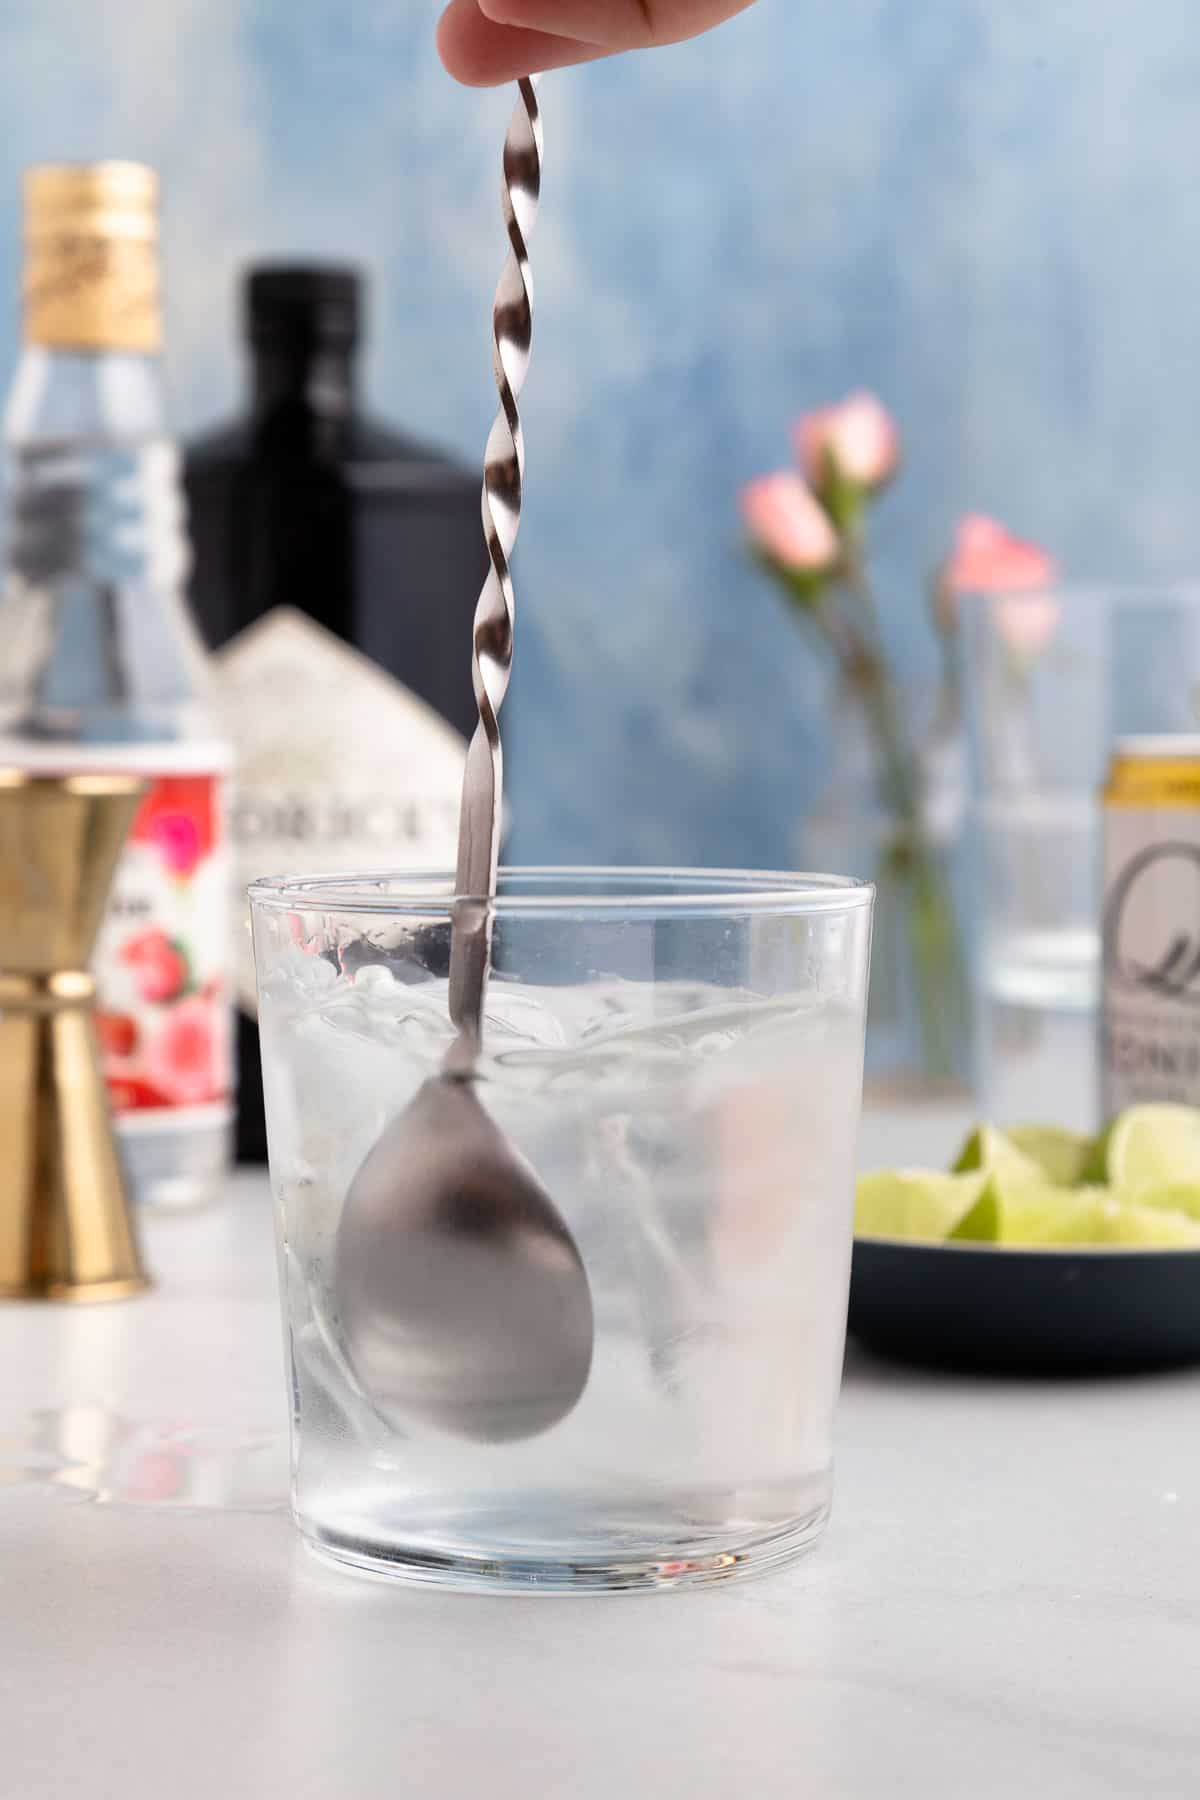 cocktail spoon stirring a clear cocktail in a small glass